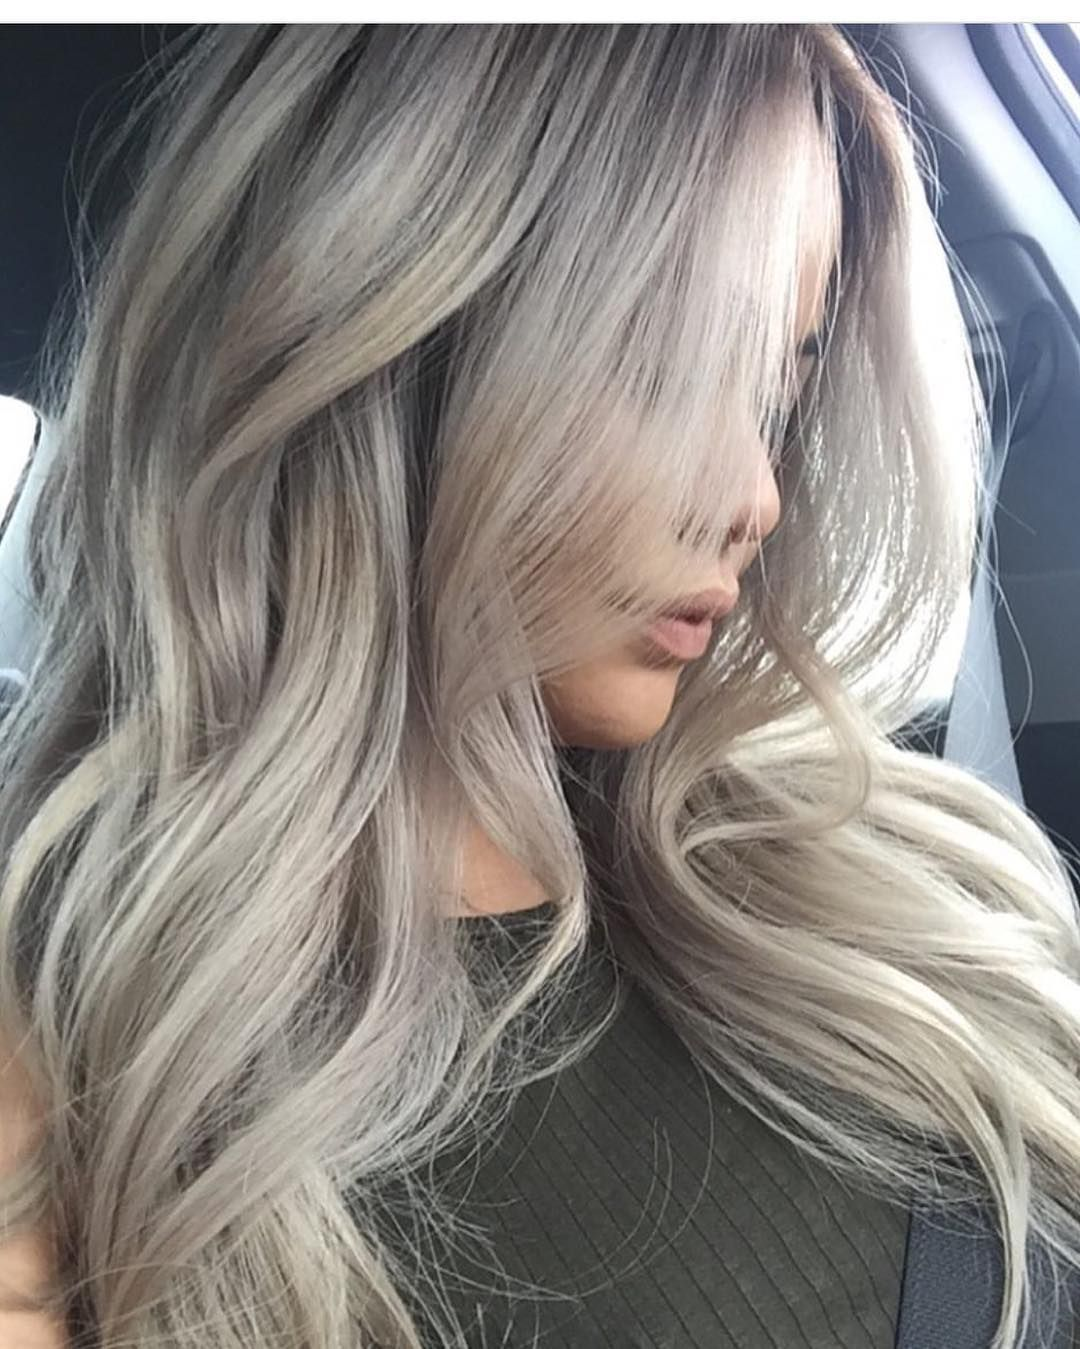 ash white blonde hair. www.amandamajor.com delray ...